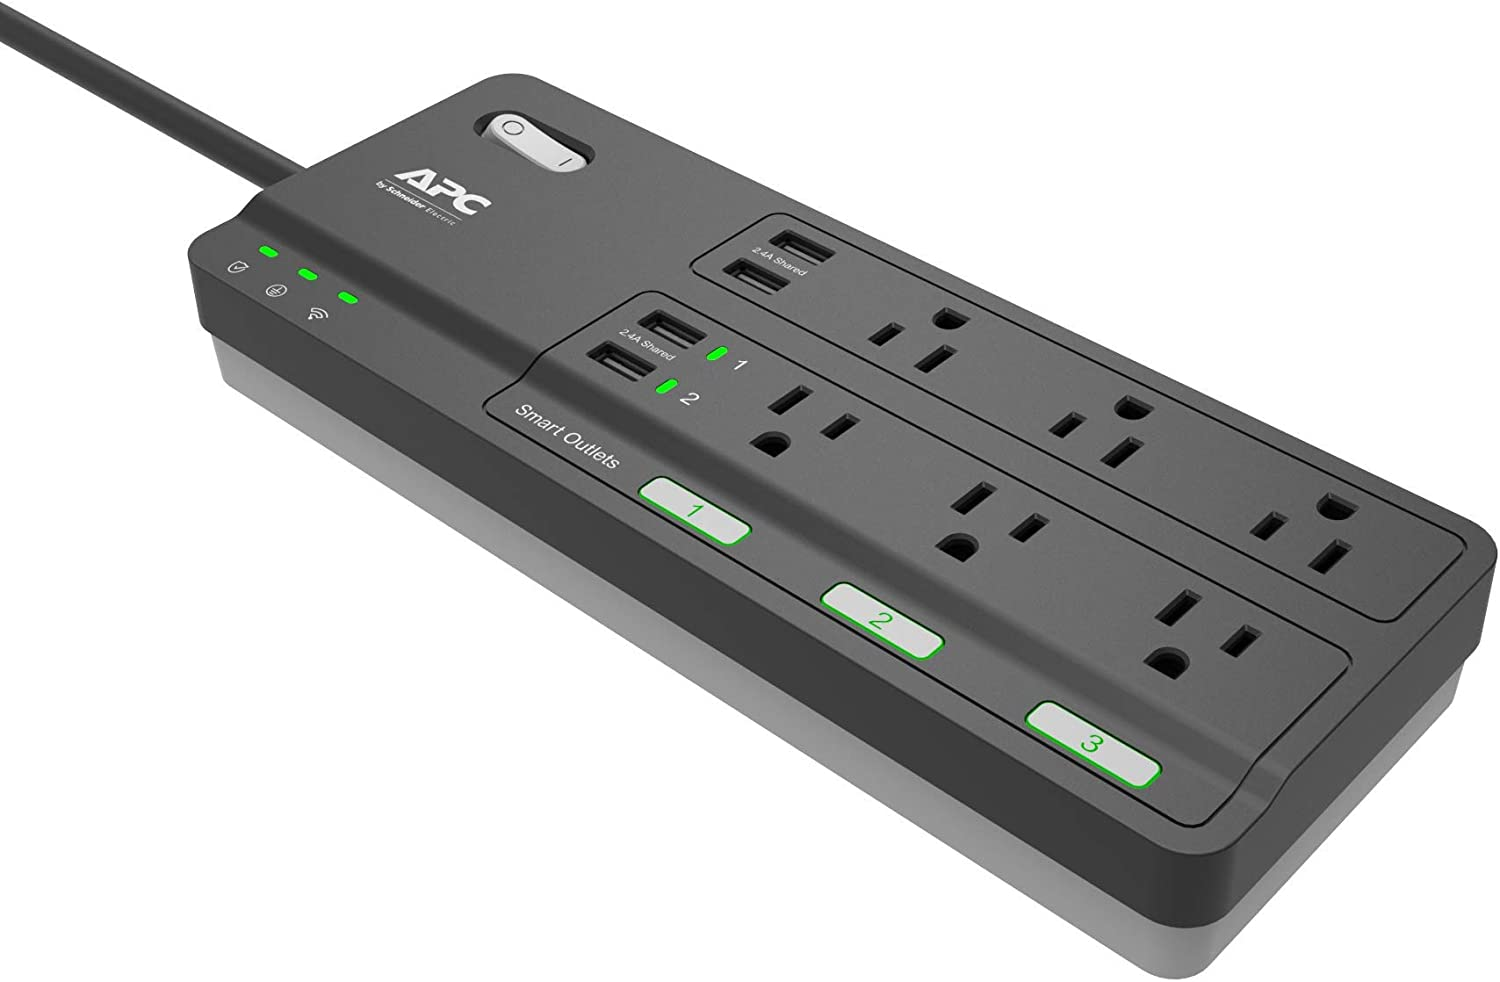 APC Smart Plug Wi-Fi Power Strip with USB Ports, PH6U4X32, 3 Smart Plugs that Work with Alexa, 6 Outlets Total, 2160 Joule Surge Protector Black